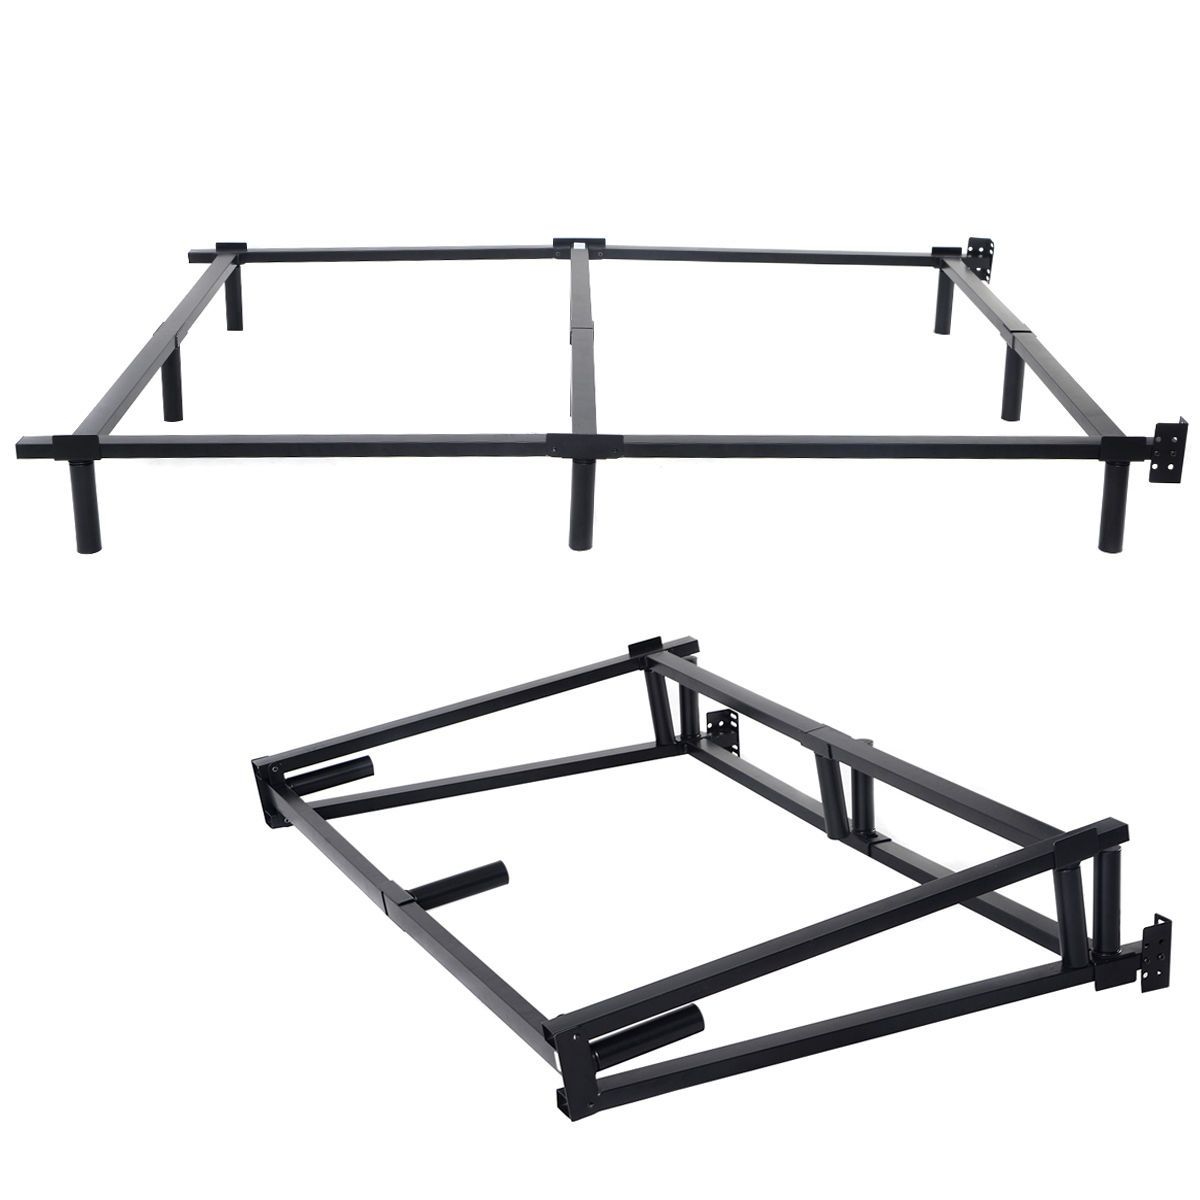 70 X 53 X 7 Full Size Folding Steel Bed Frame Steel Bed Frame